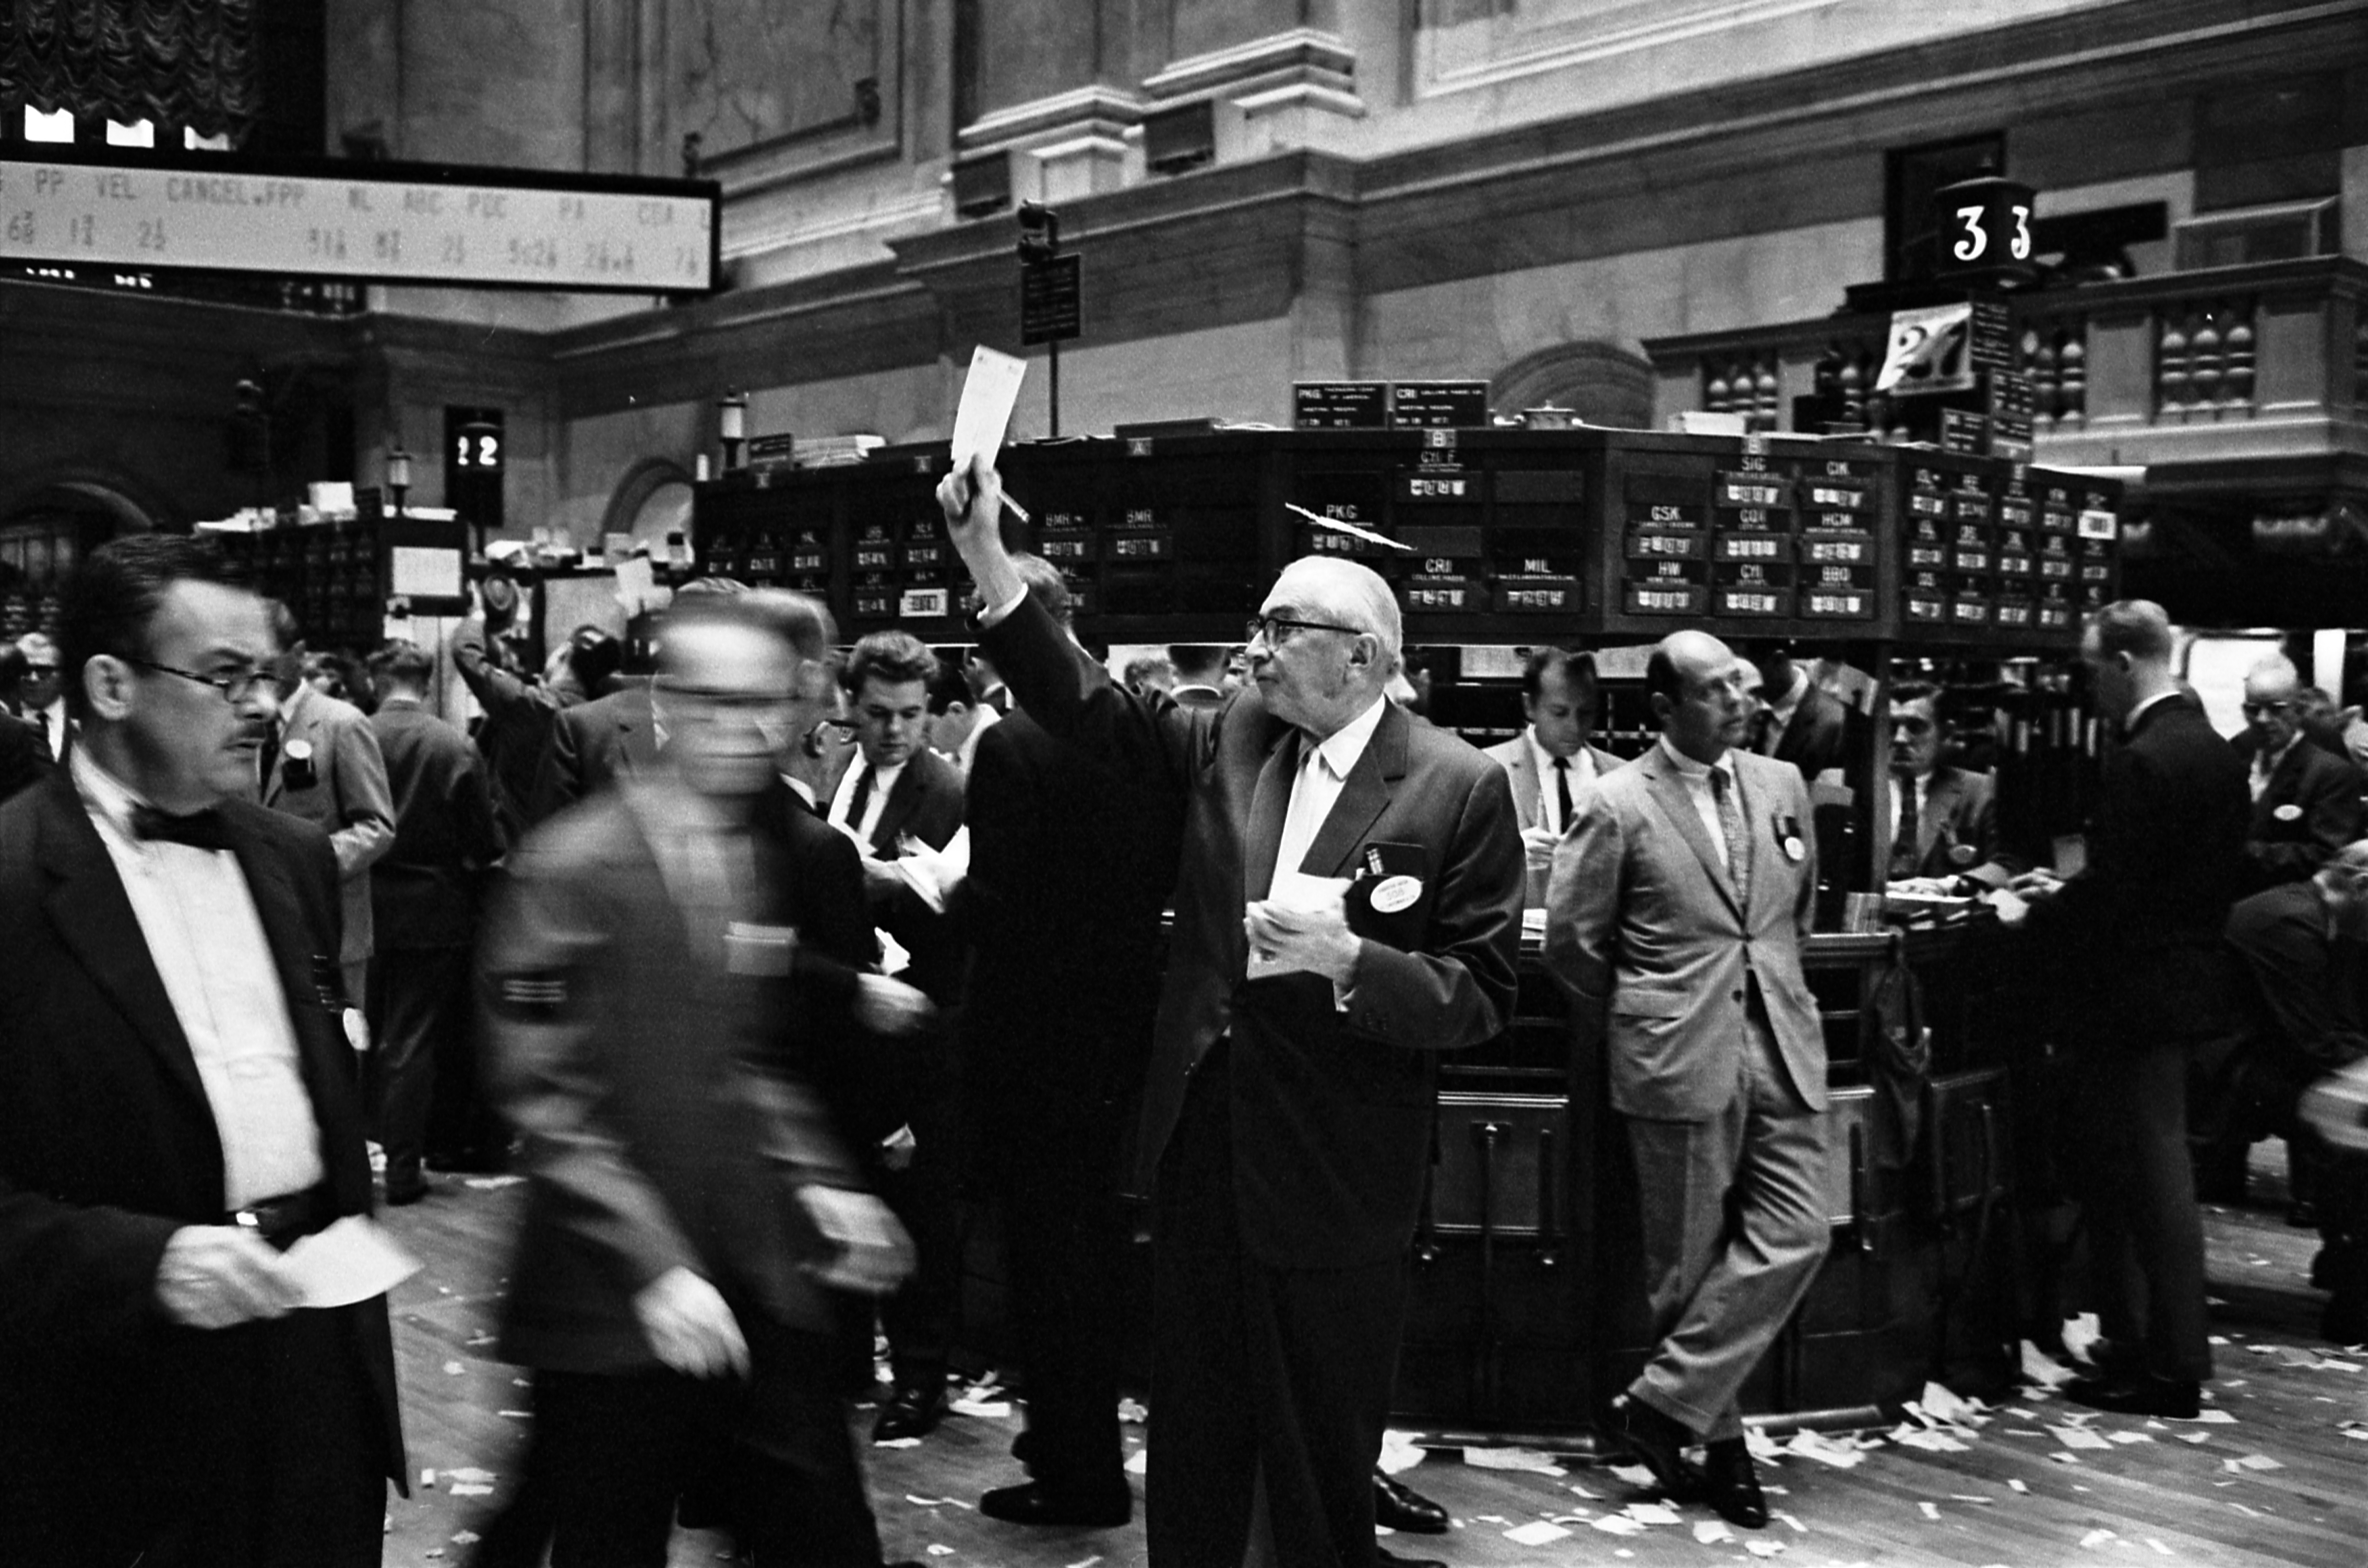 ... traders floor LC-U9-10548-6.jpg - Wikipedia, the free encyclopedia: en.wikipedia.org/wiki/file:ny_stock_exchange_traders_floor_lc-u9...